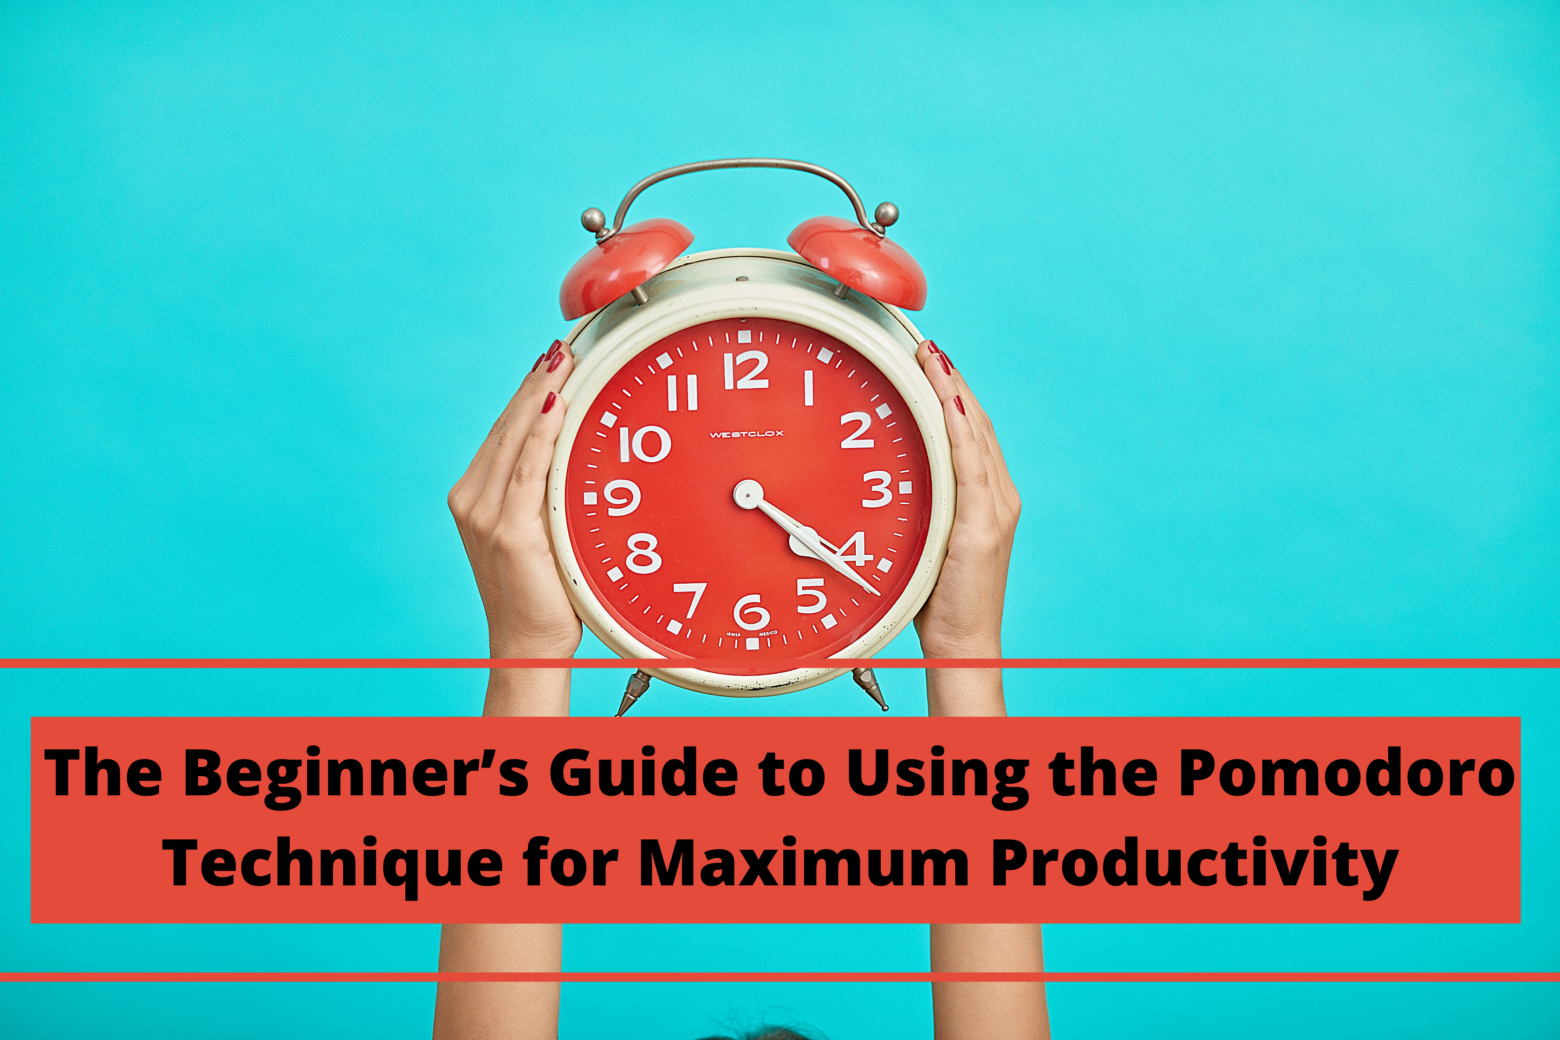 The Beginner's Guide to Using the Pomodoro Technique for Maximum Productivity